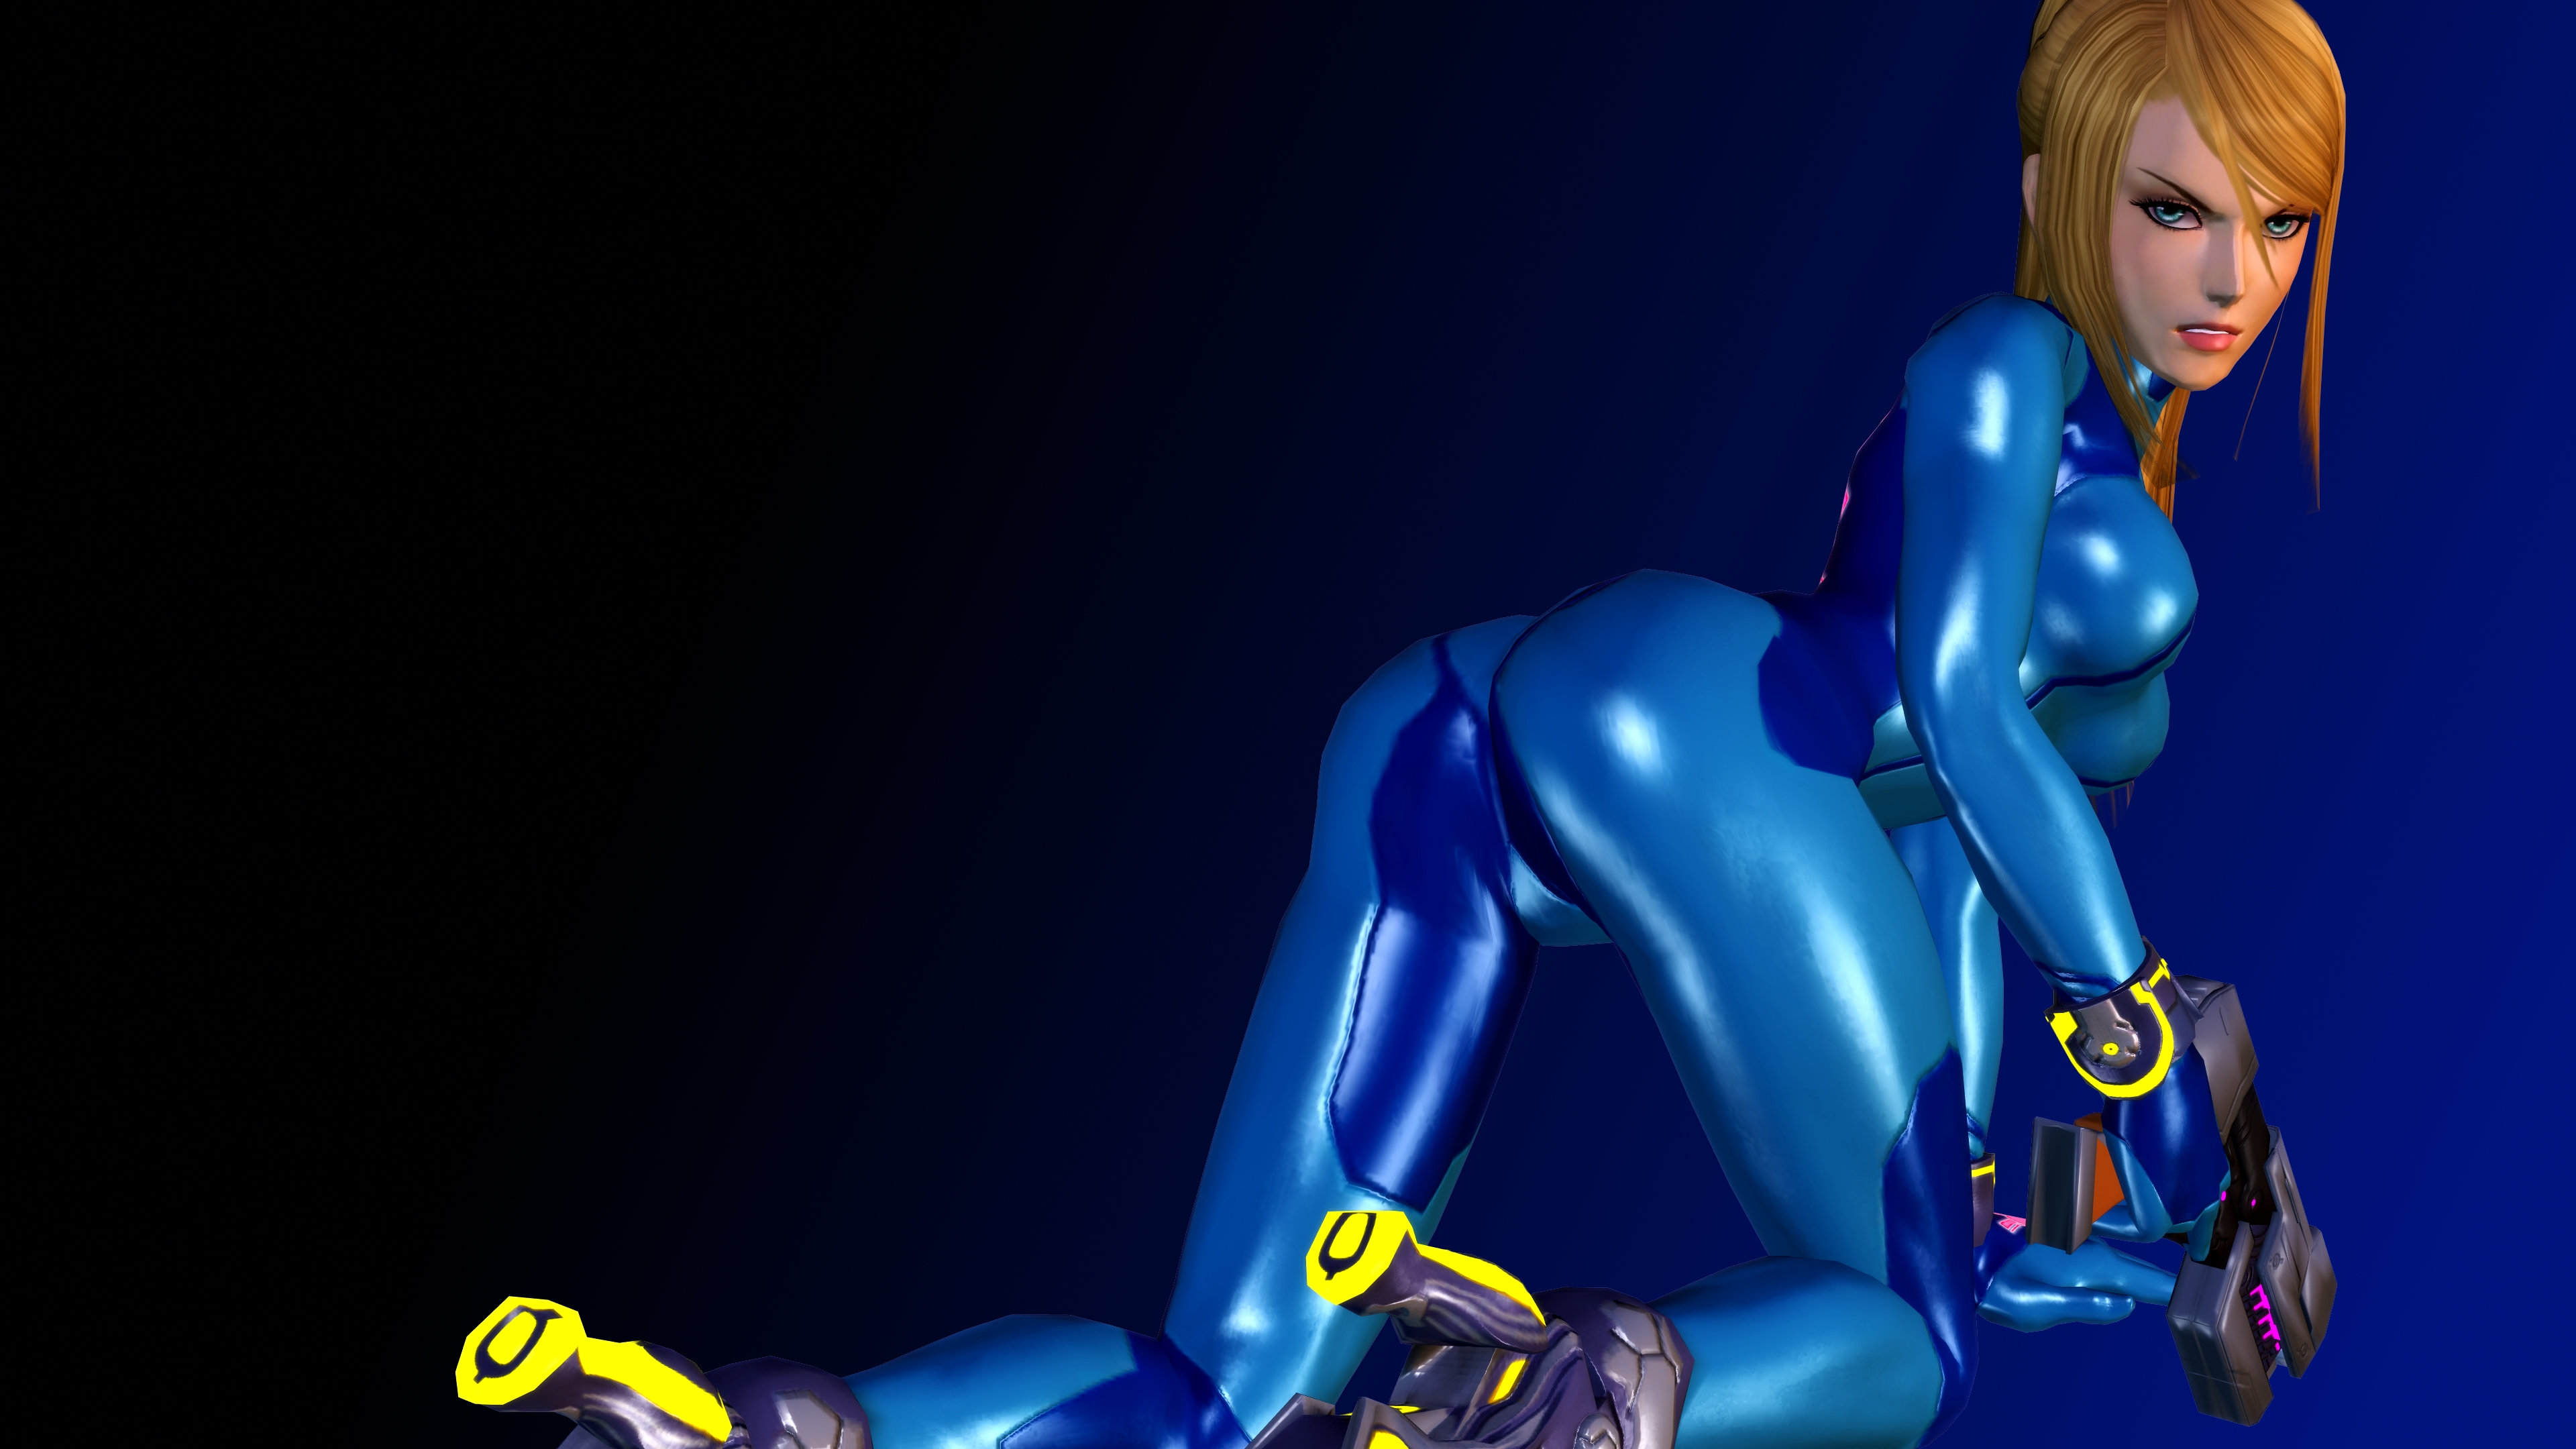 zero suit samus wallpaper